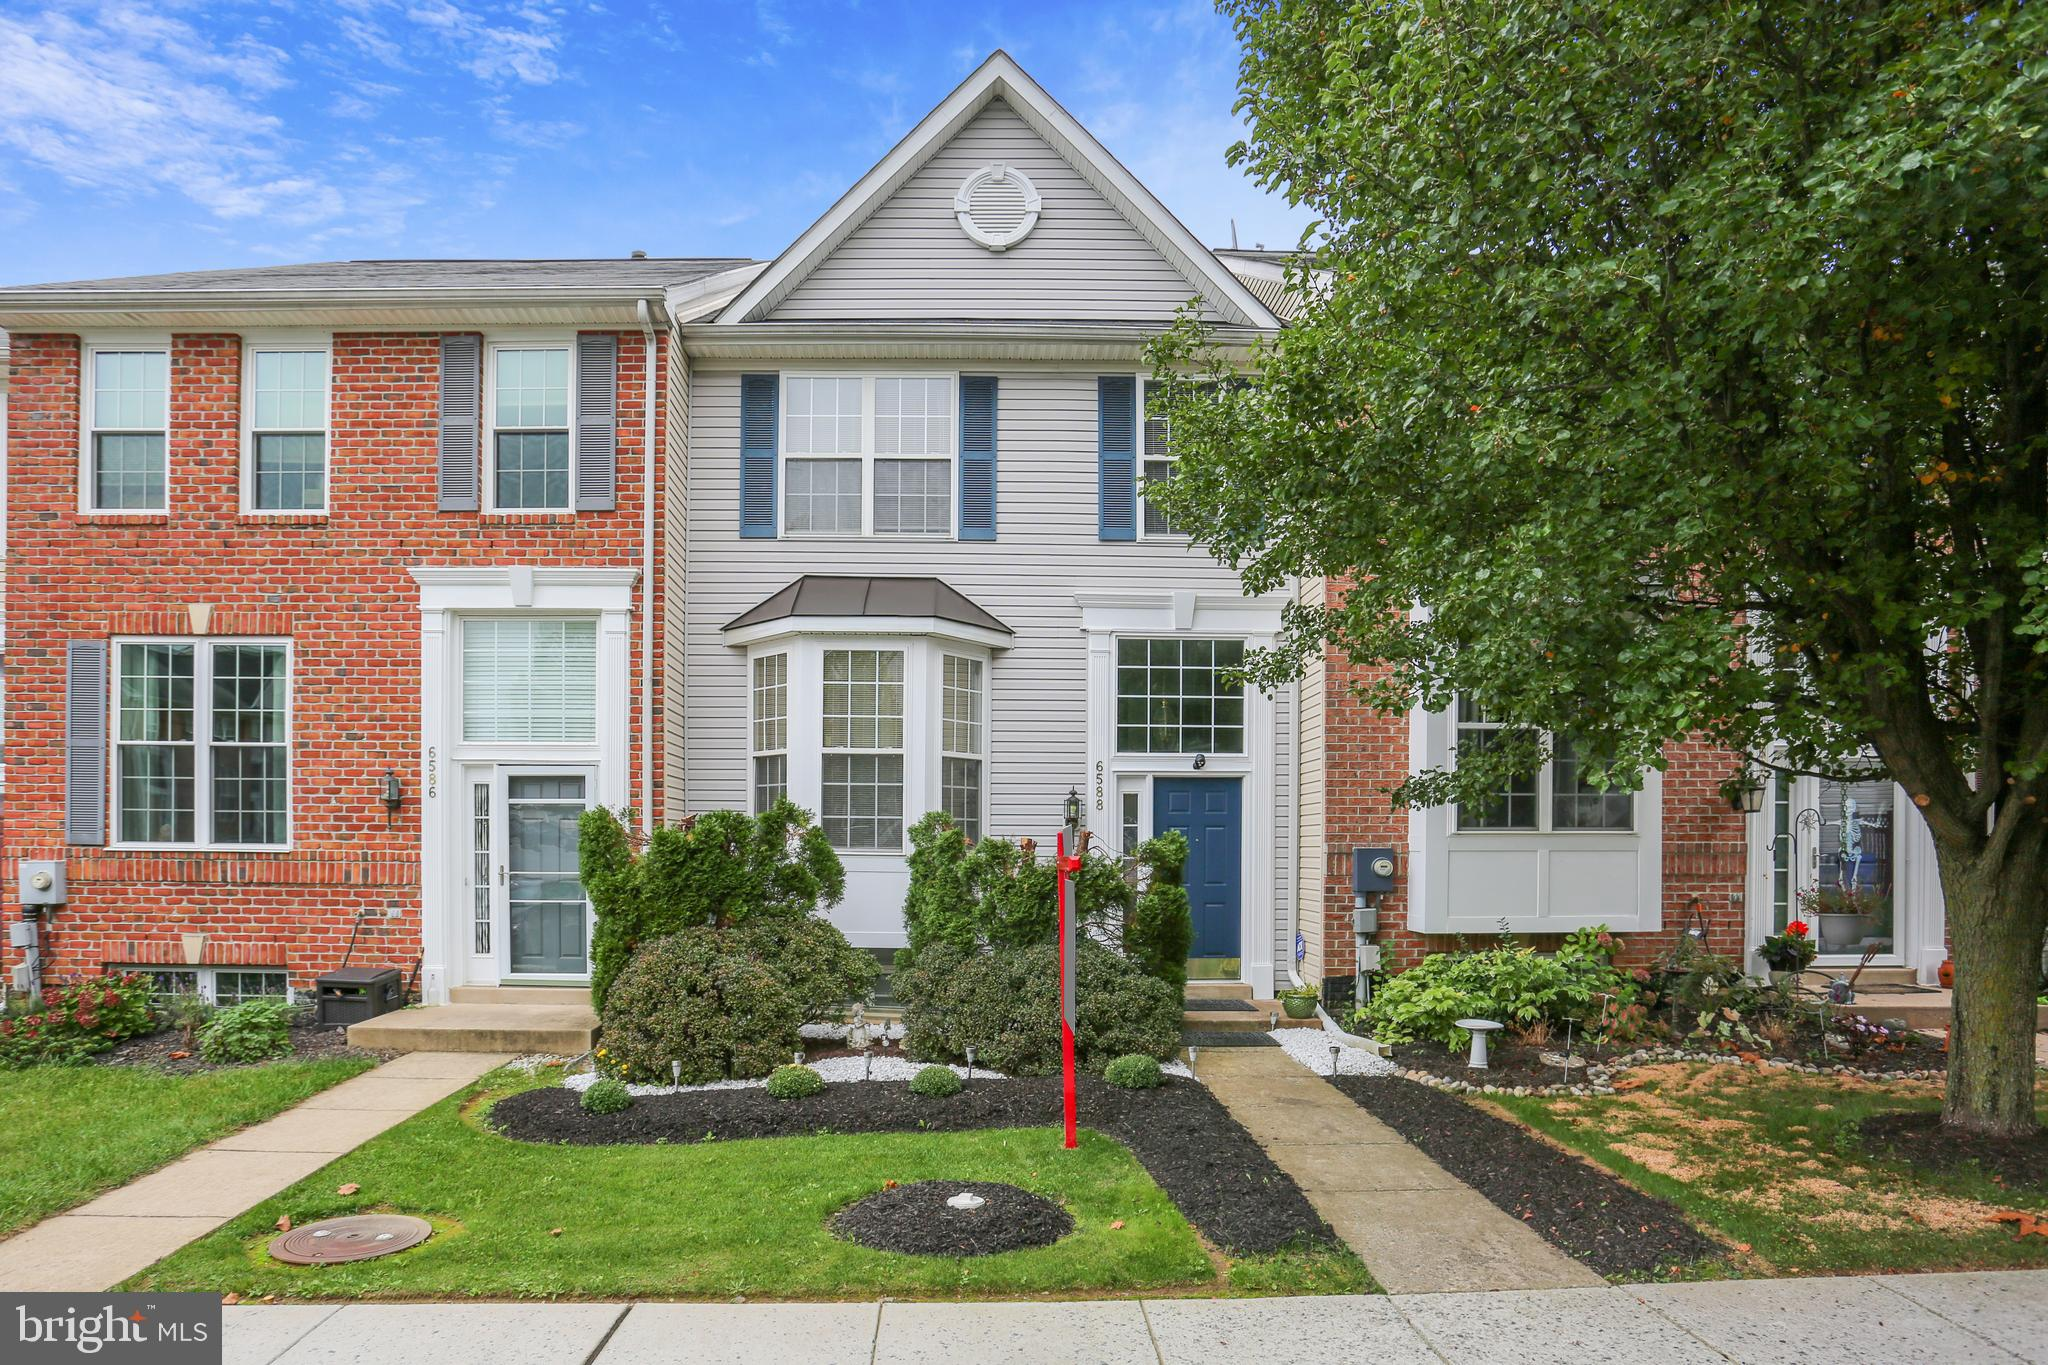 6588 Duncan Place, Frederick, MD 21703